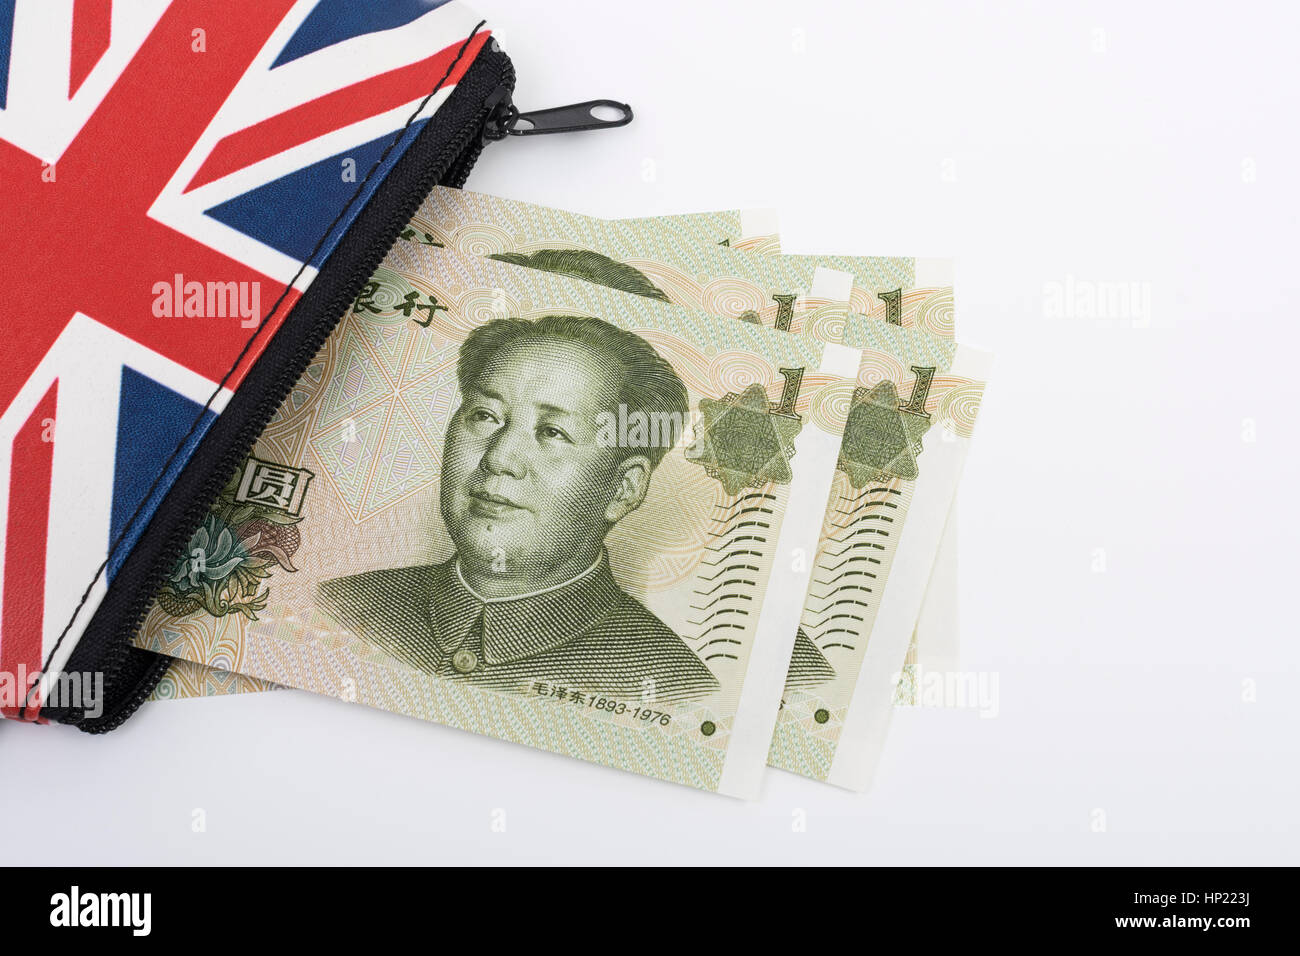 Union Jack coin purse with Chinese 1 Yuan banknotes - as metaphor for Yuan / Renminbi-Sterling exchange rate. Stock Photo